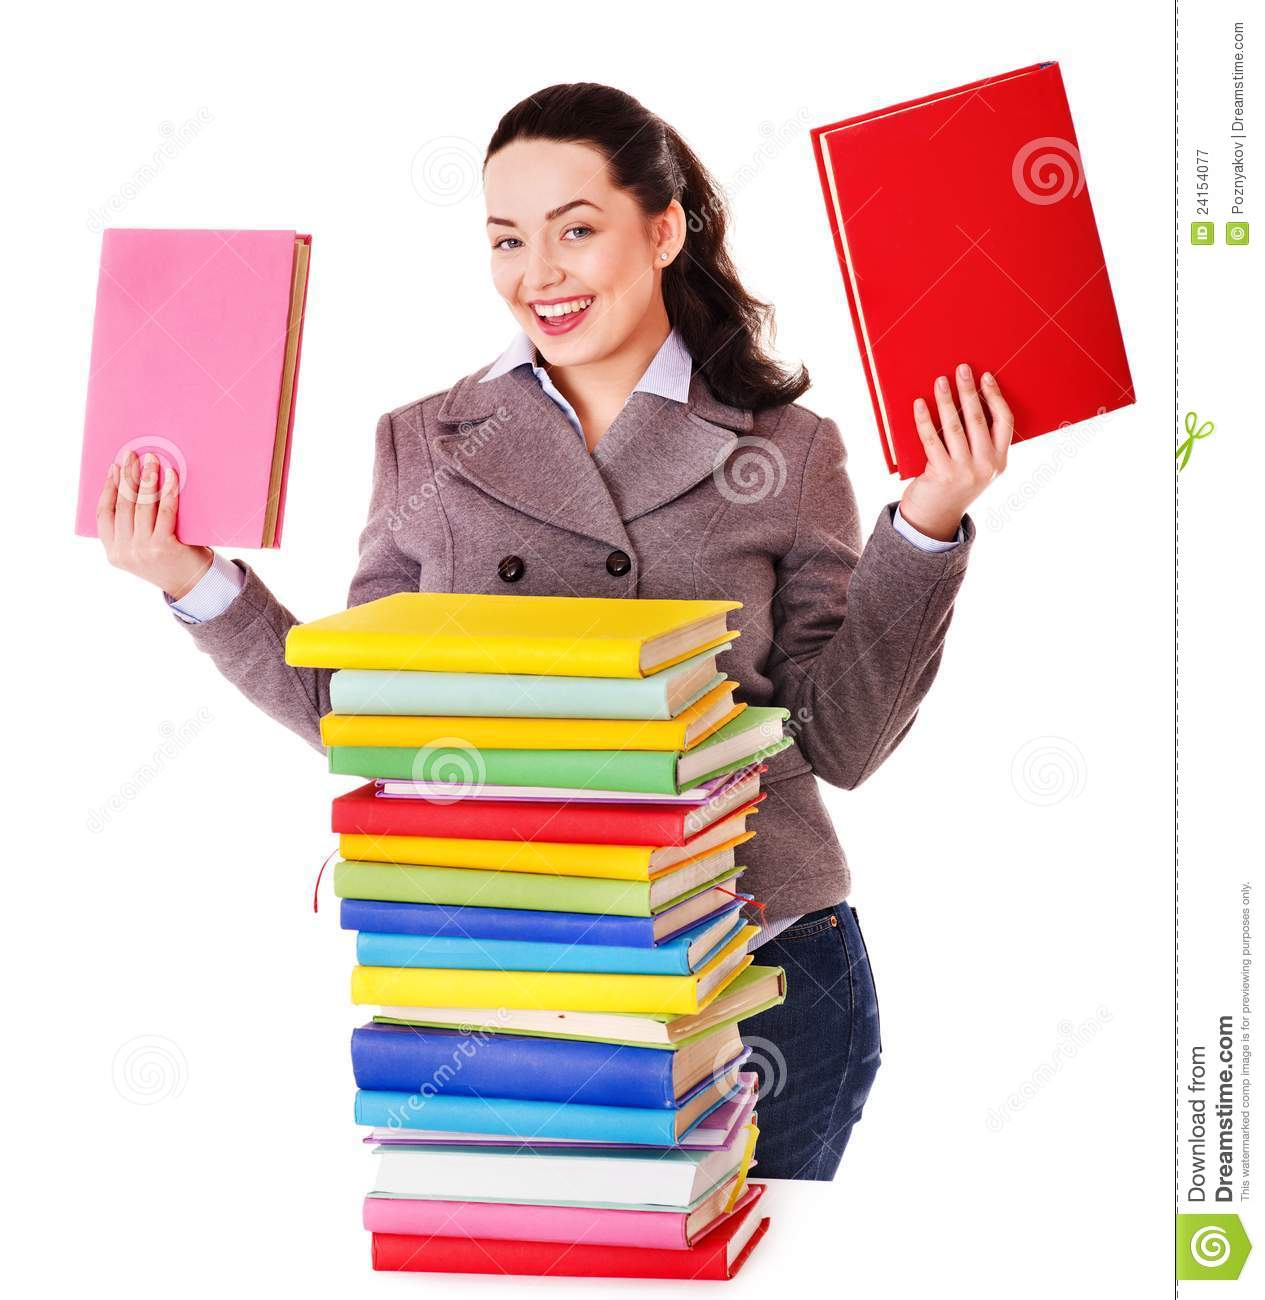 Woman holding book.